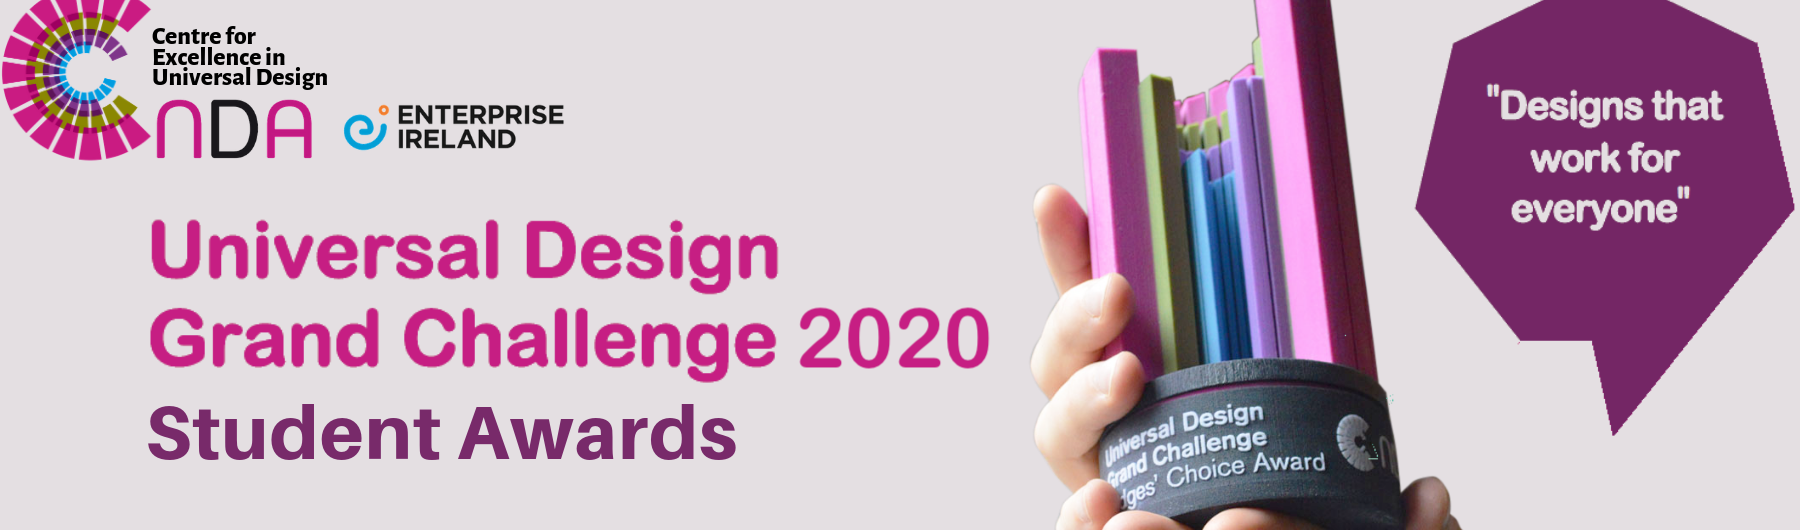 Universal Design Grand Challenge 2020 Student Awards